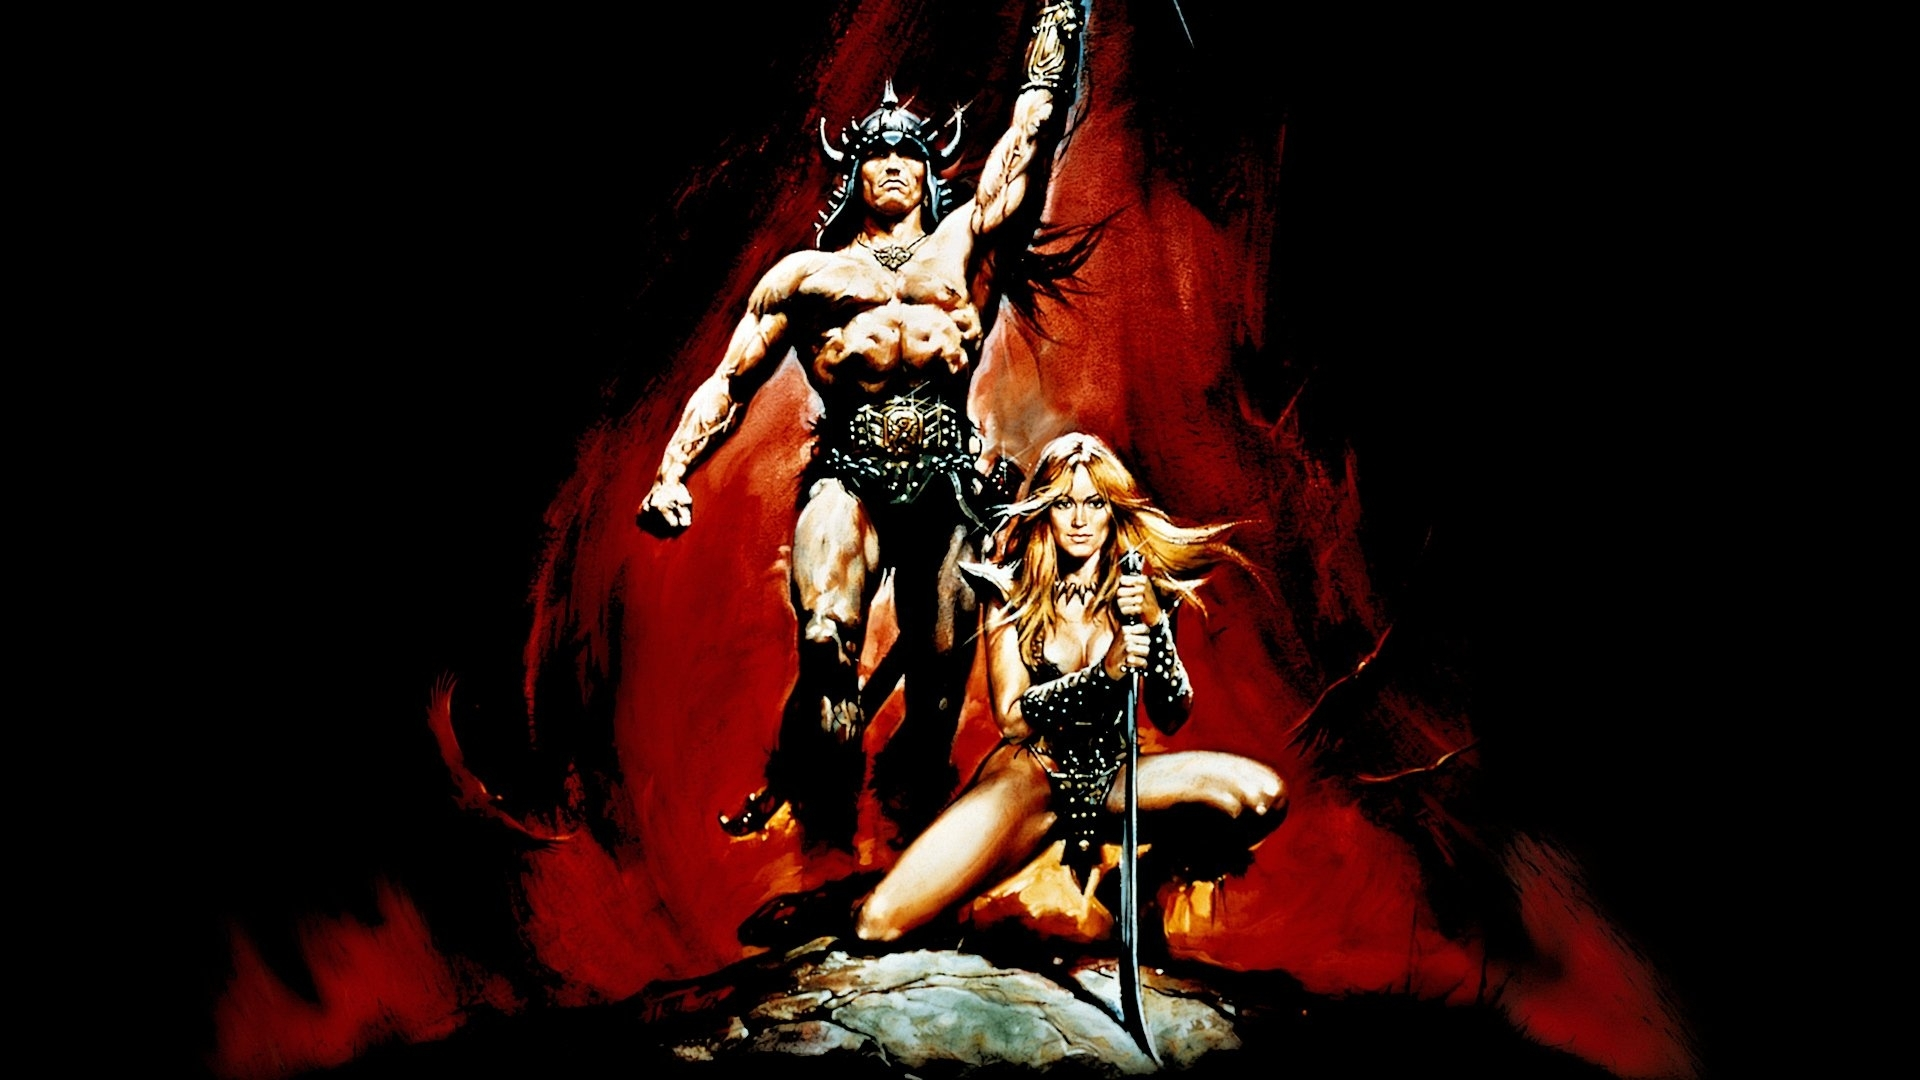 conan the barbarian (1982) full hd wallpaper and background image